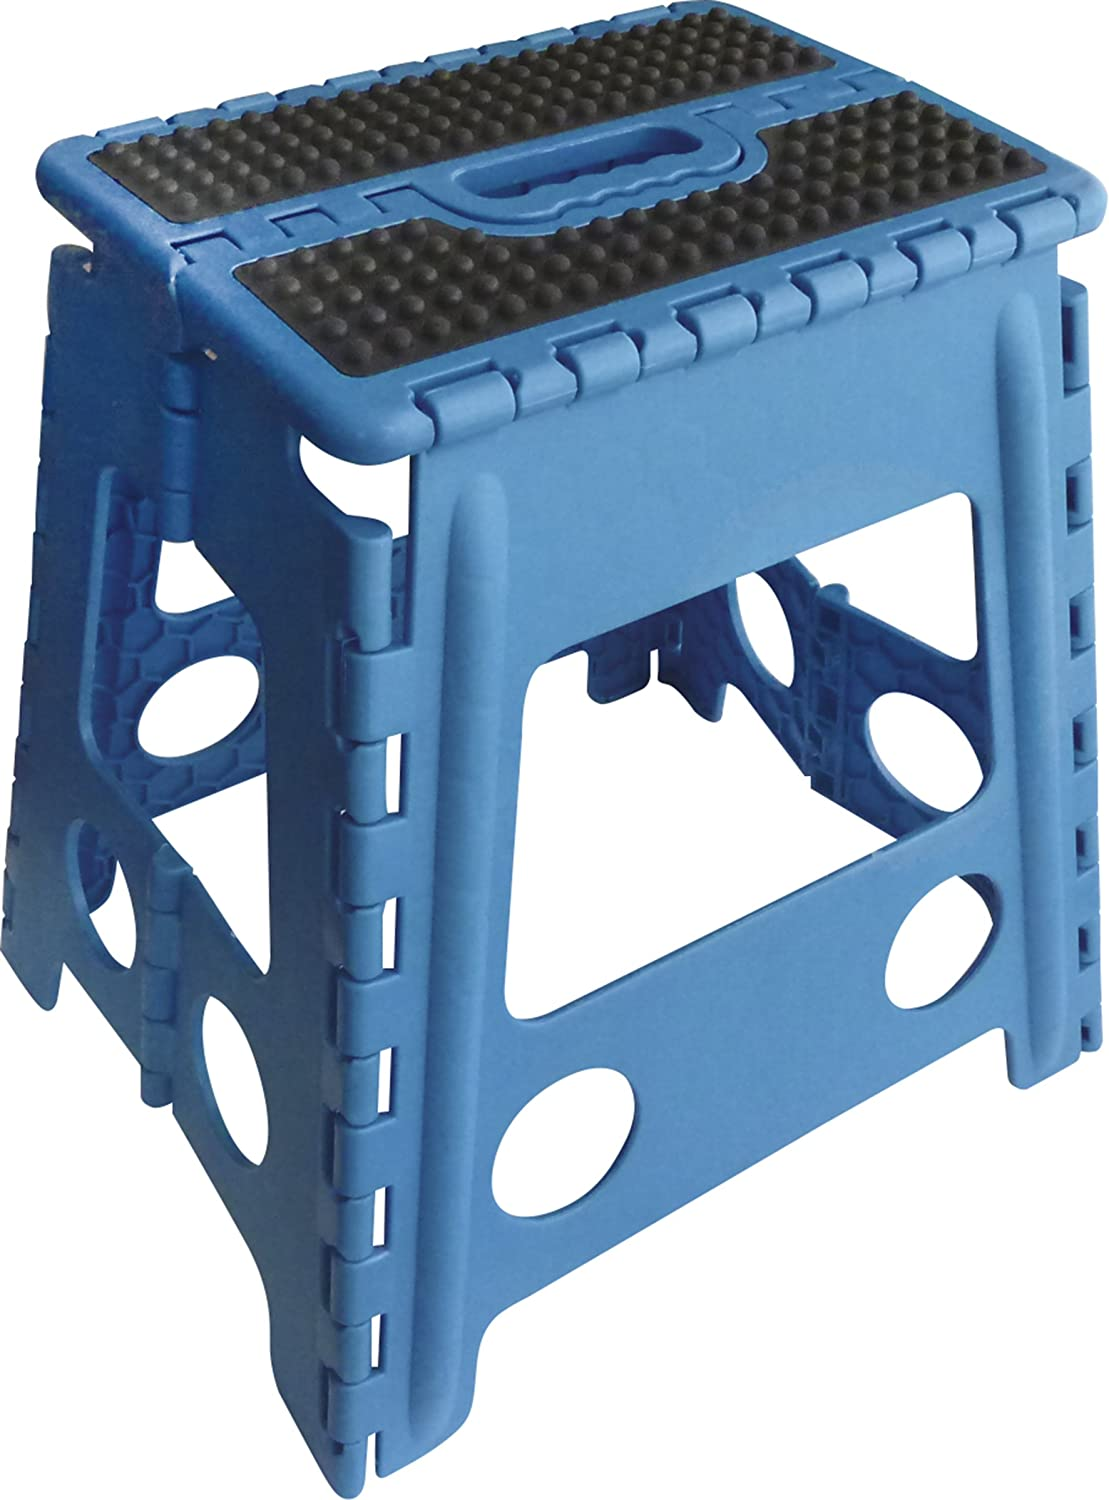 HIPPO-TONIC Grip Folding Step Stool Grey 28.5 x 21.5 x 39 cm 930251